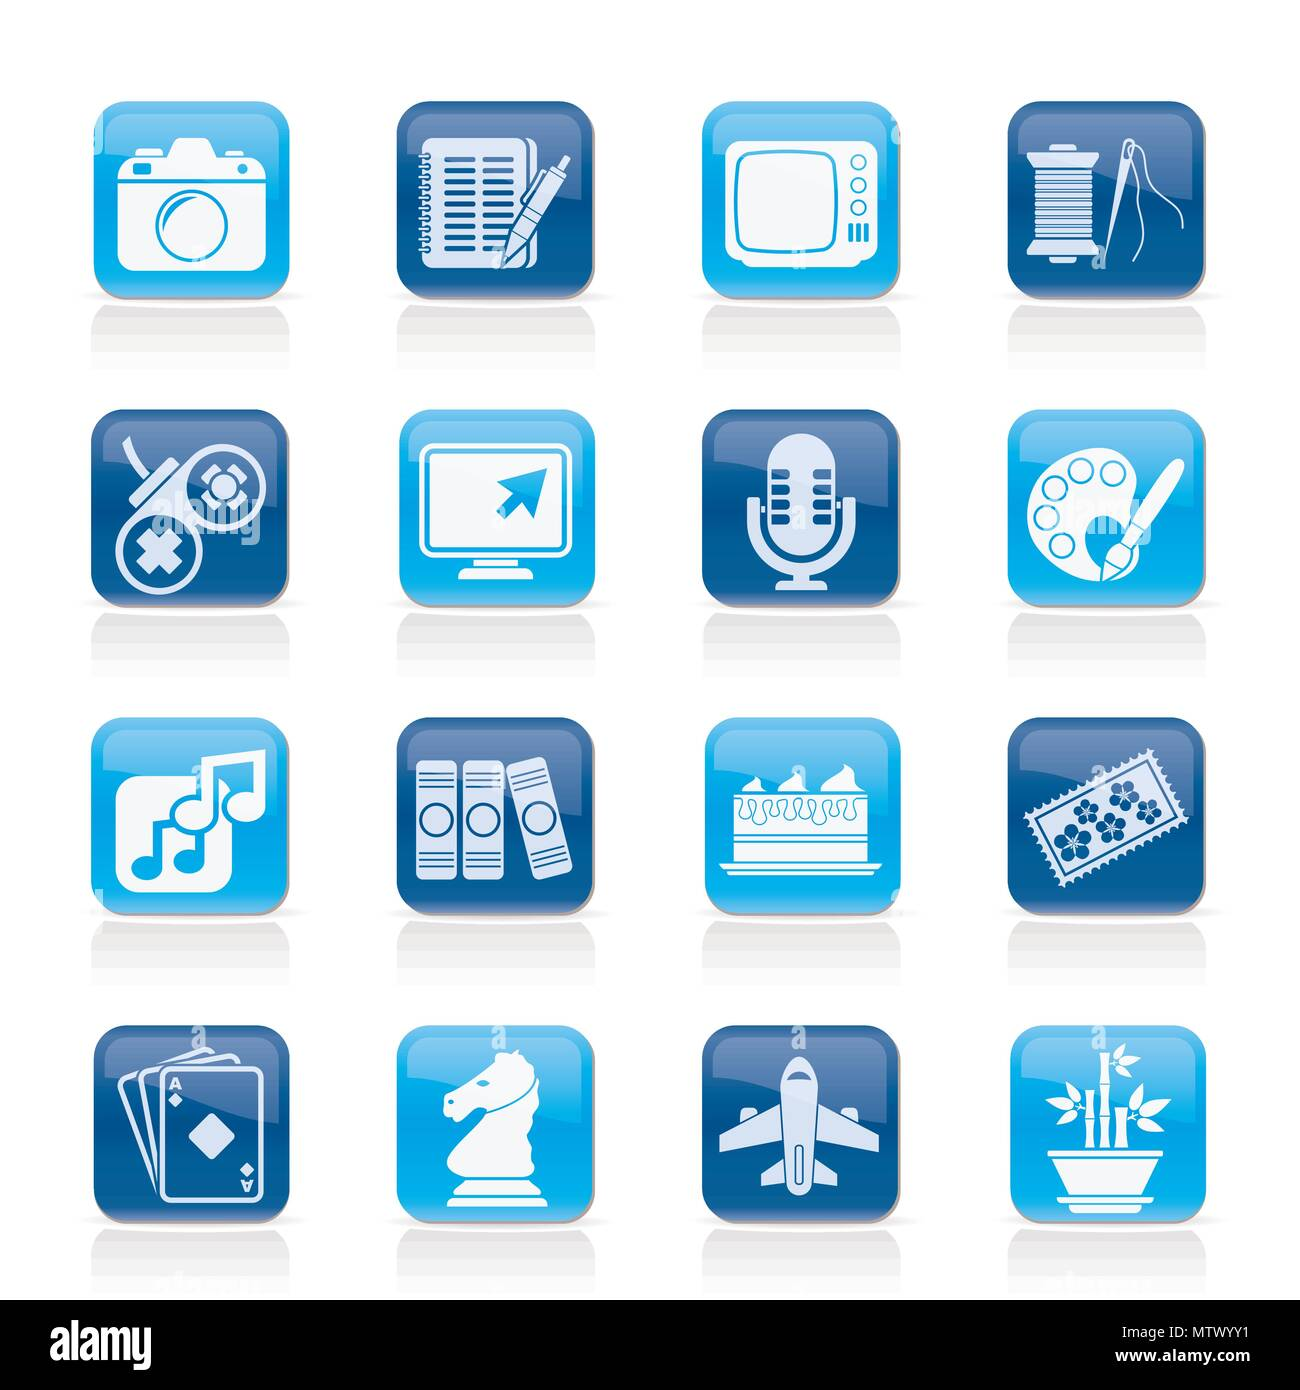 Hobbies and leisure Icons - vector icon set - Stock Image